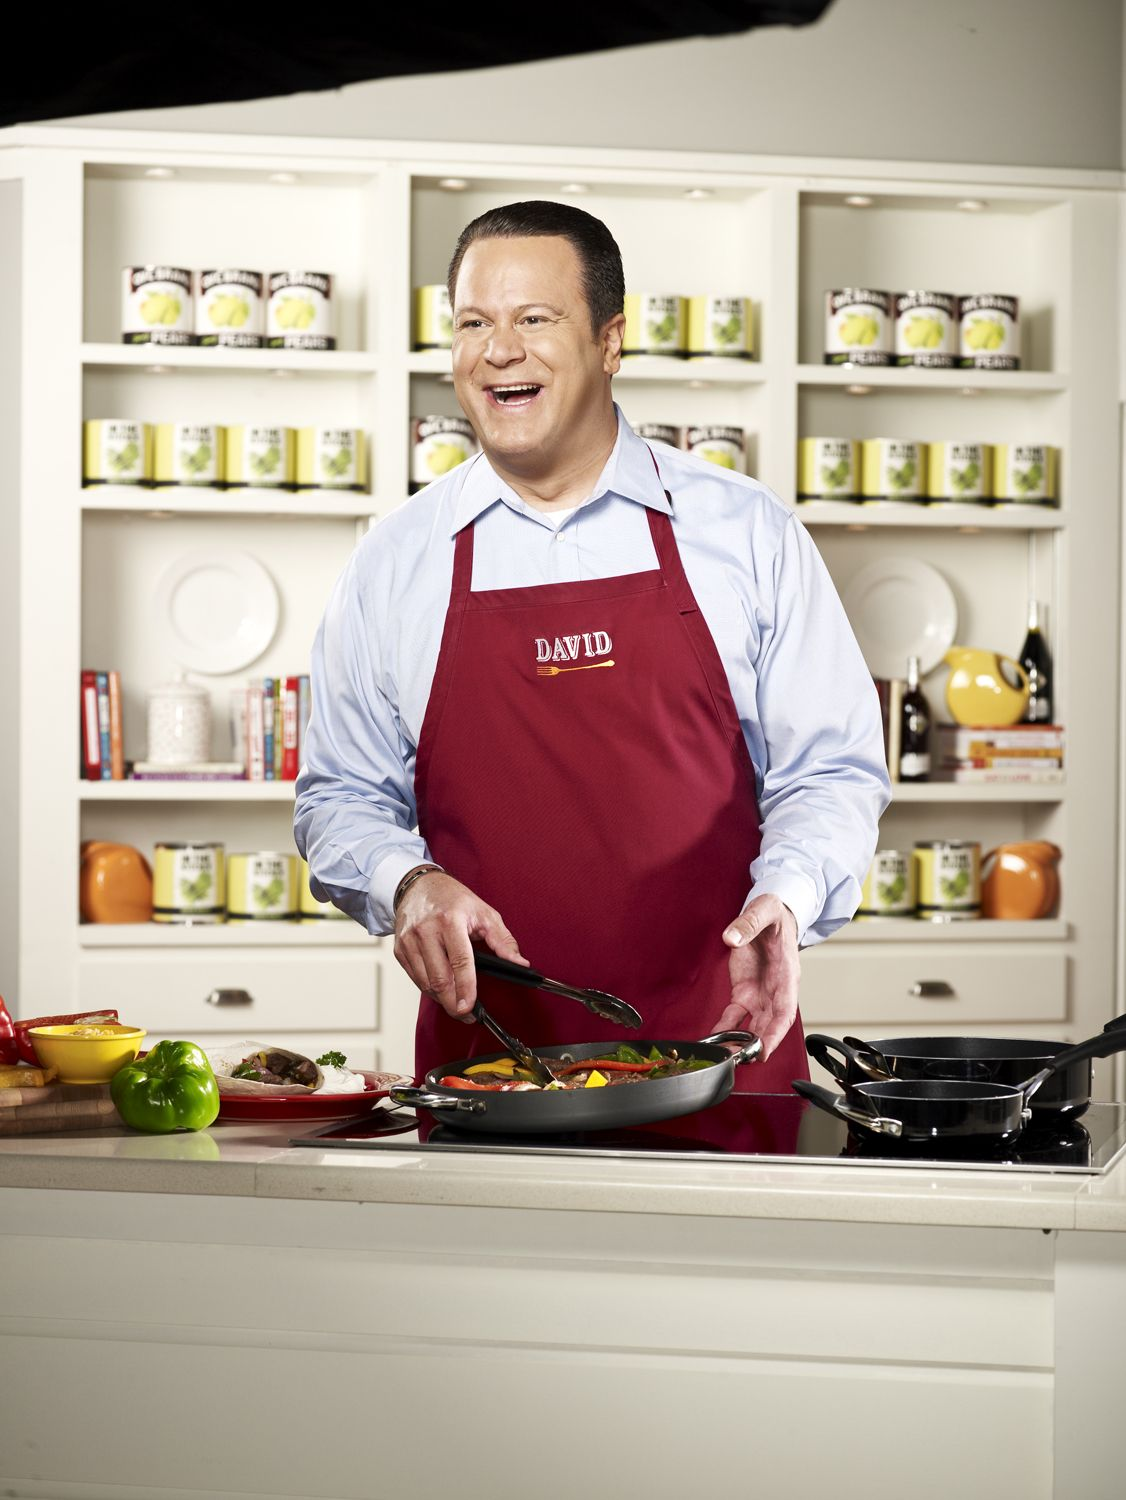 David Venable Qvc My Favorite Cooking Show And Host On Wed